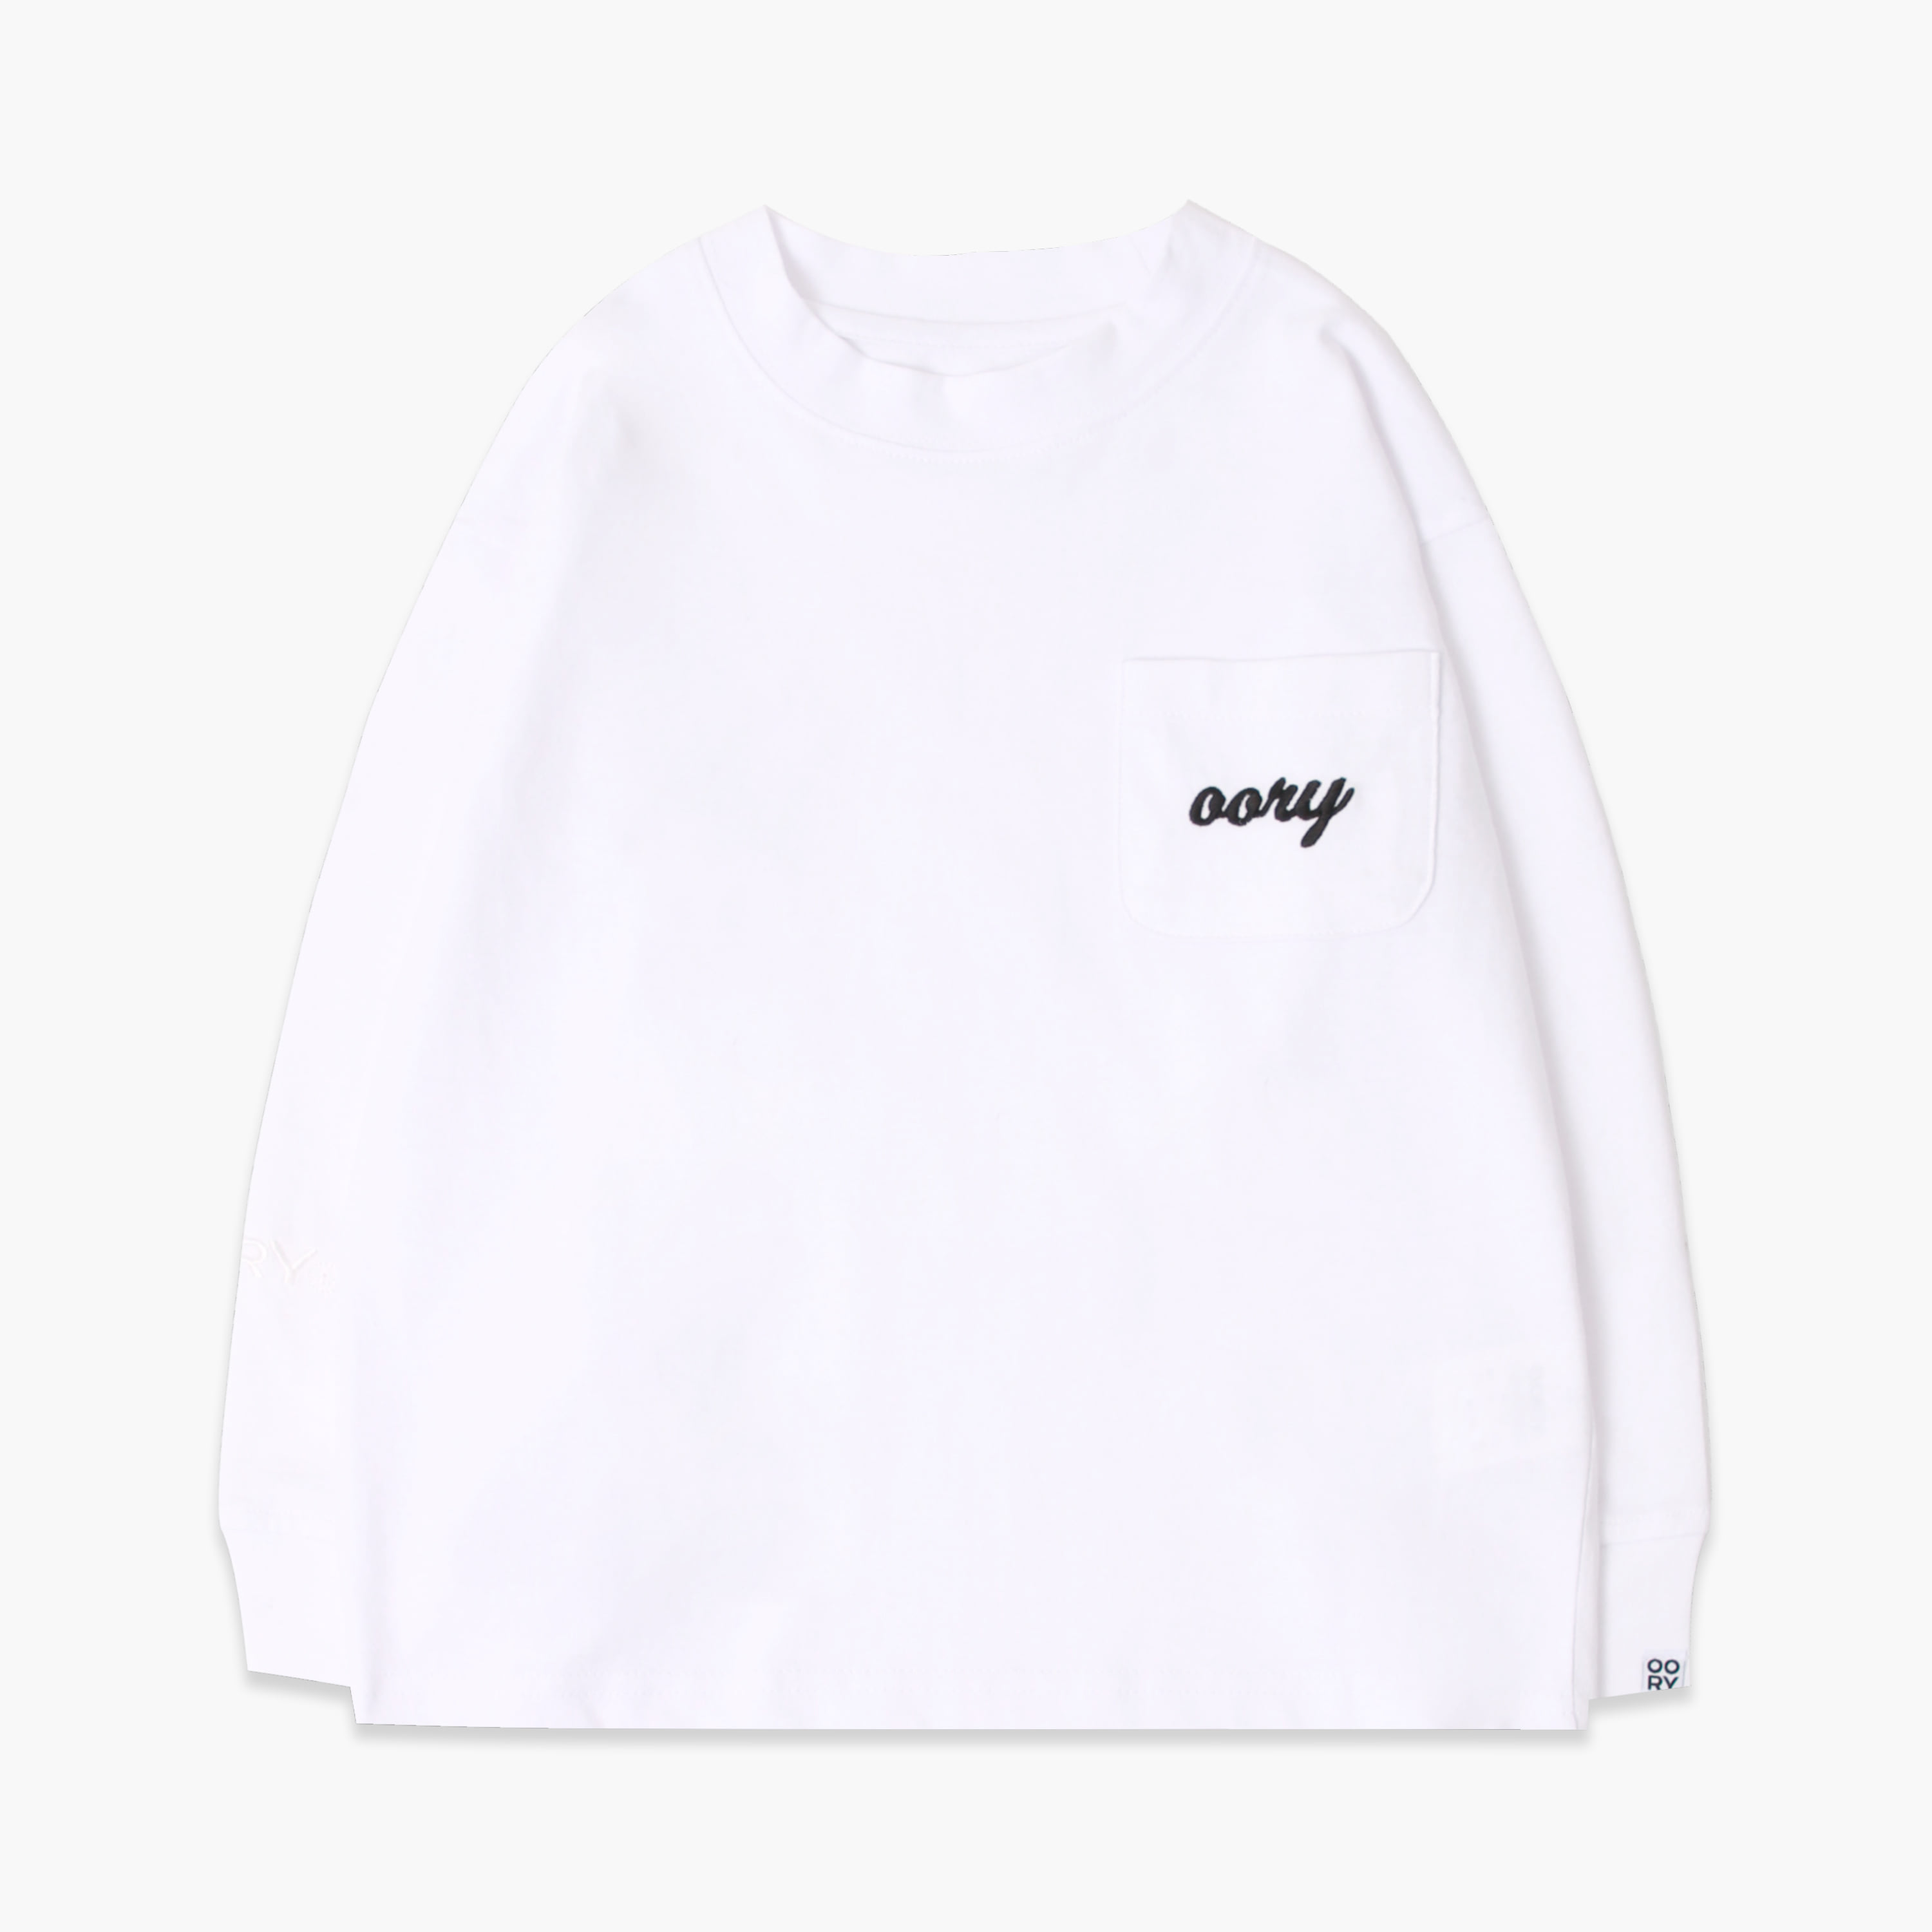 OORY color single t-shirt  - white  ( 2차 입고 )